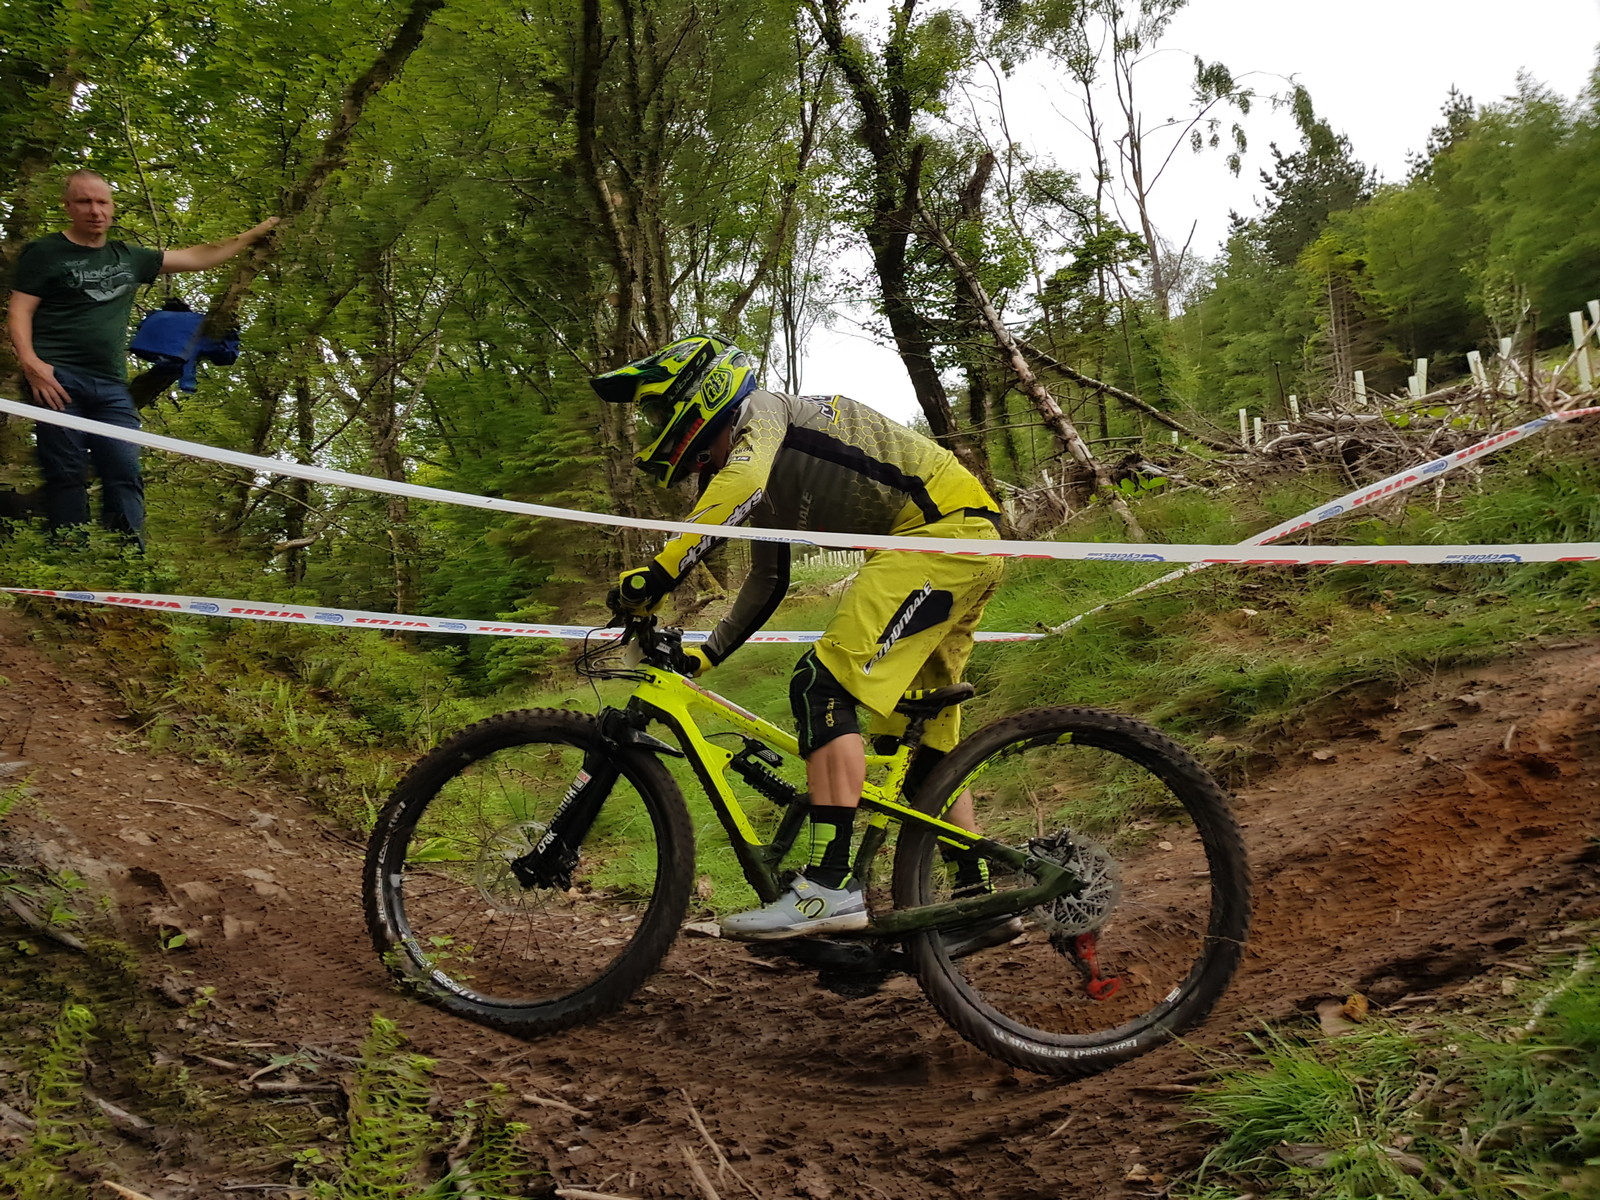 Jerome Clementz' Cannondale Jekyll G-ed Out - G-out Project: EWS Ireland 2017 - Mountain Biking Pictures - Vital MTB